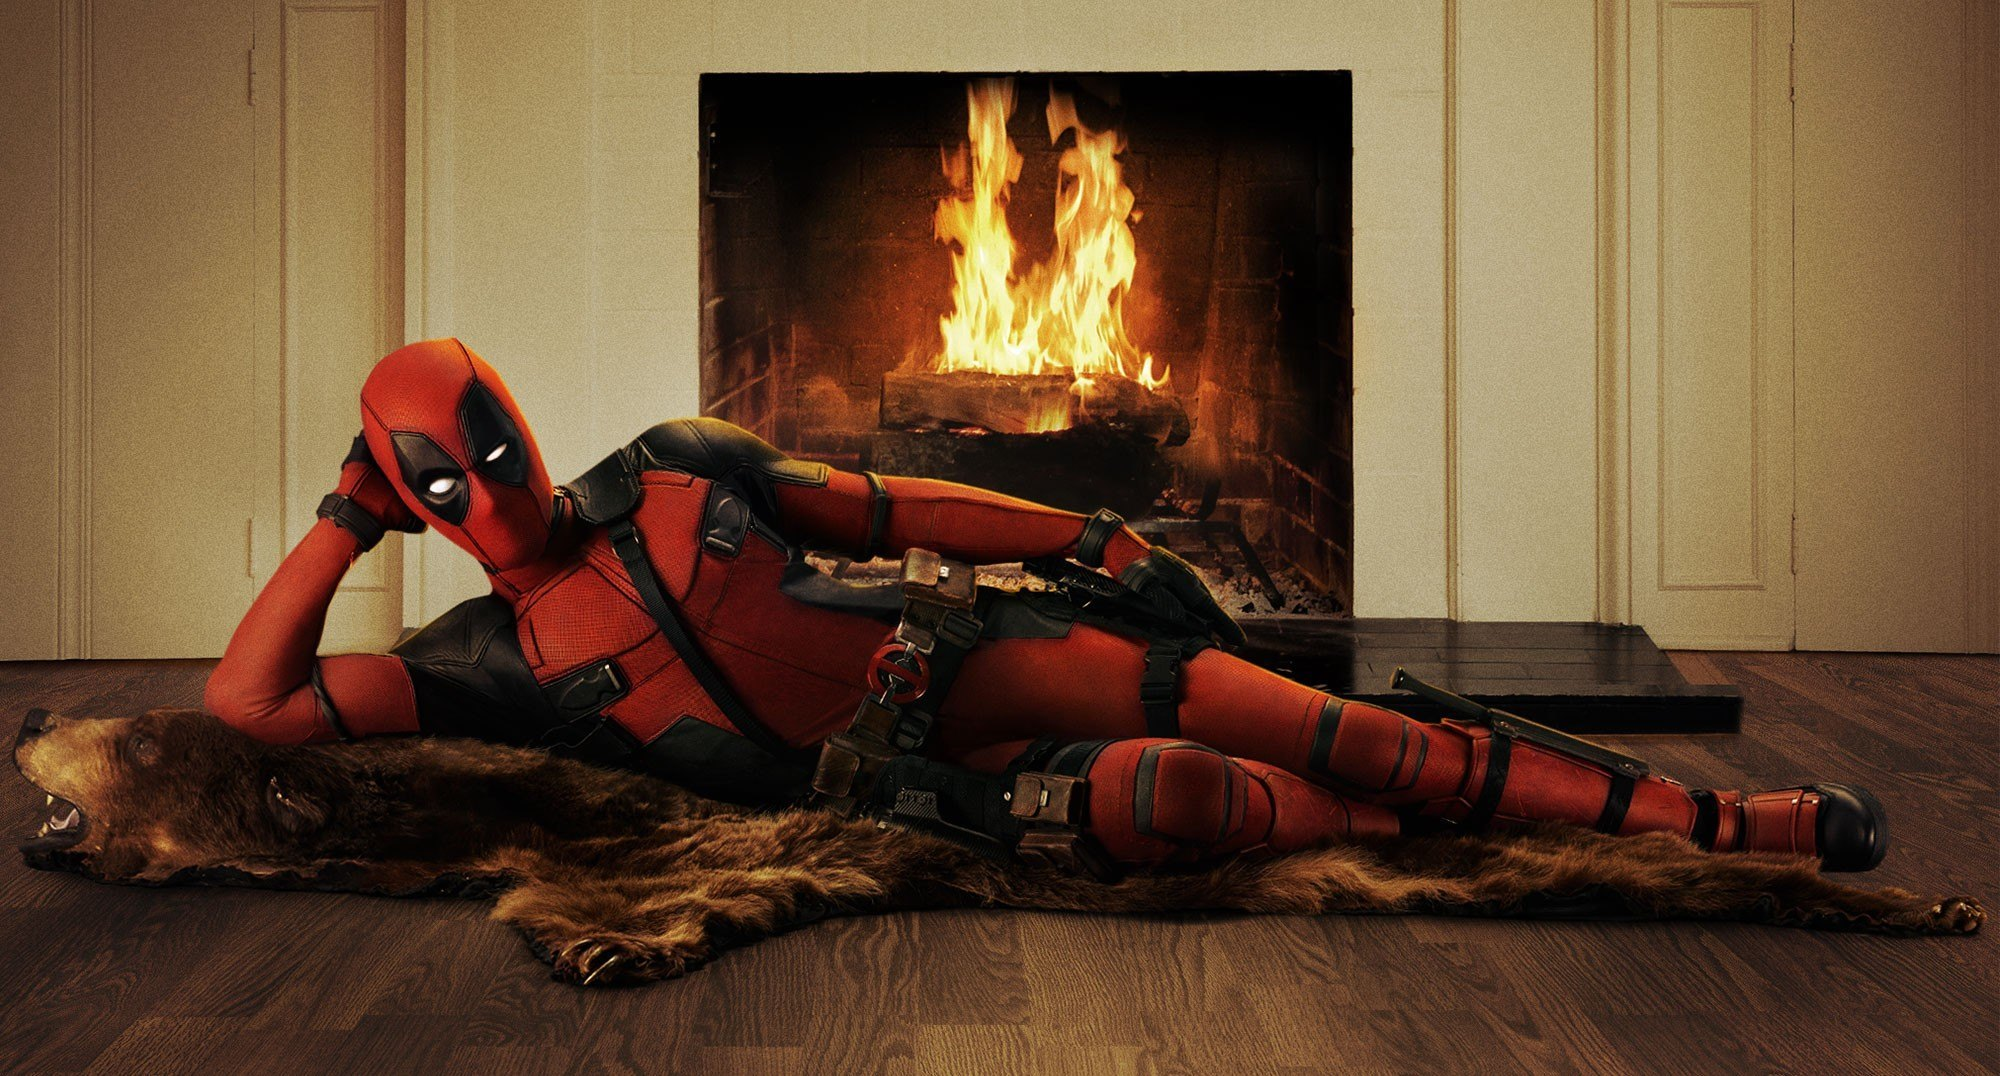 'Deadpool' Review You'll forget all those bad comic book movies Ryan Reynolds starred in 2016 images